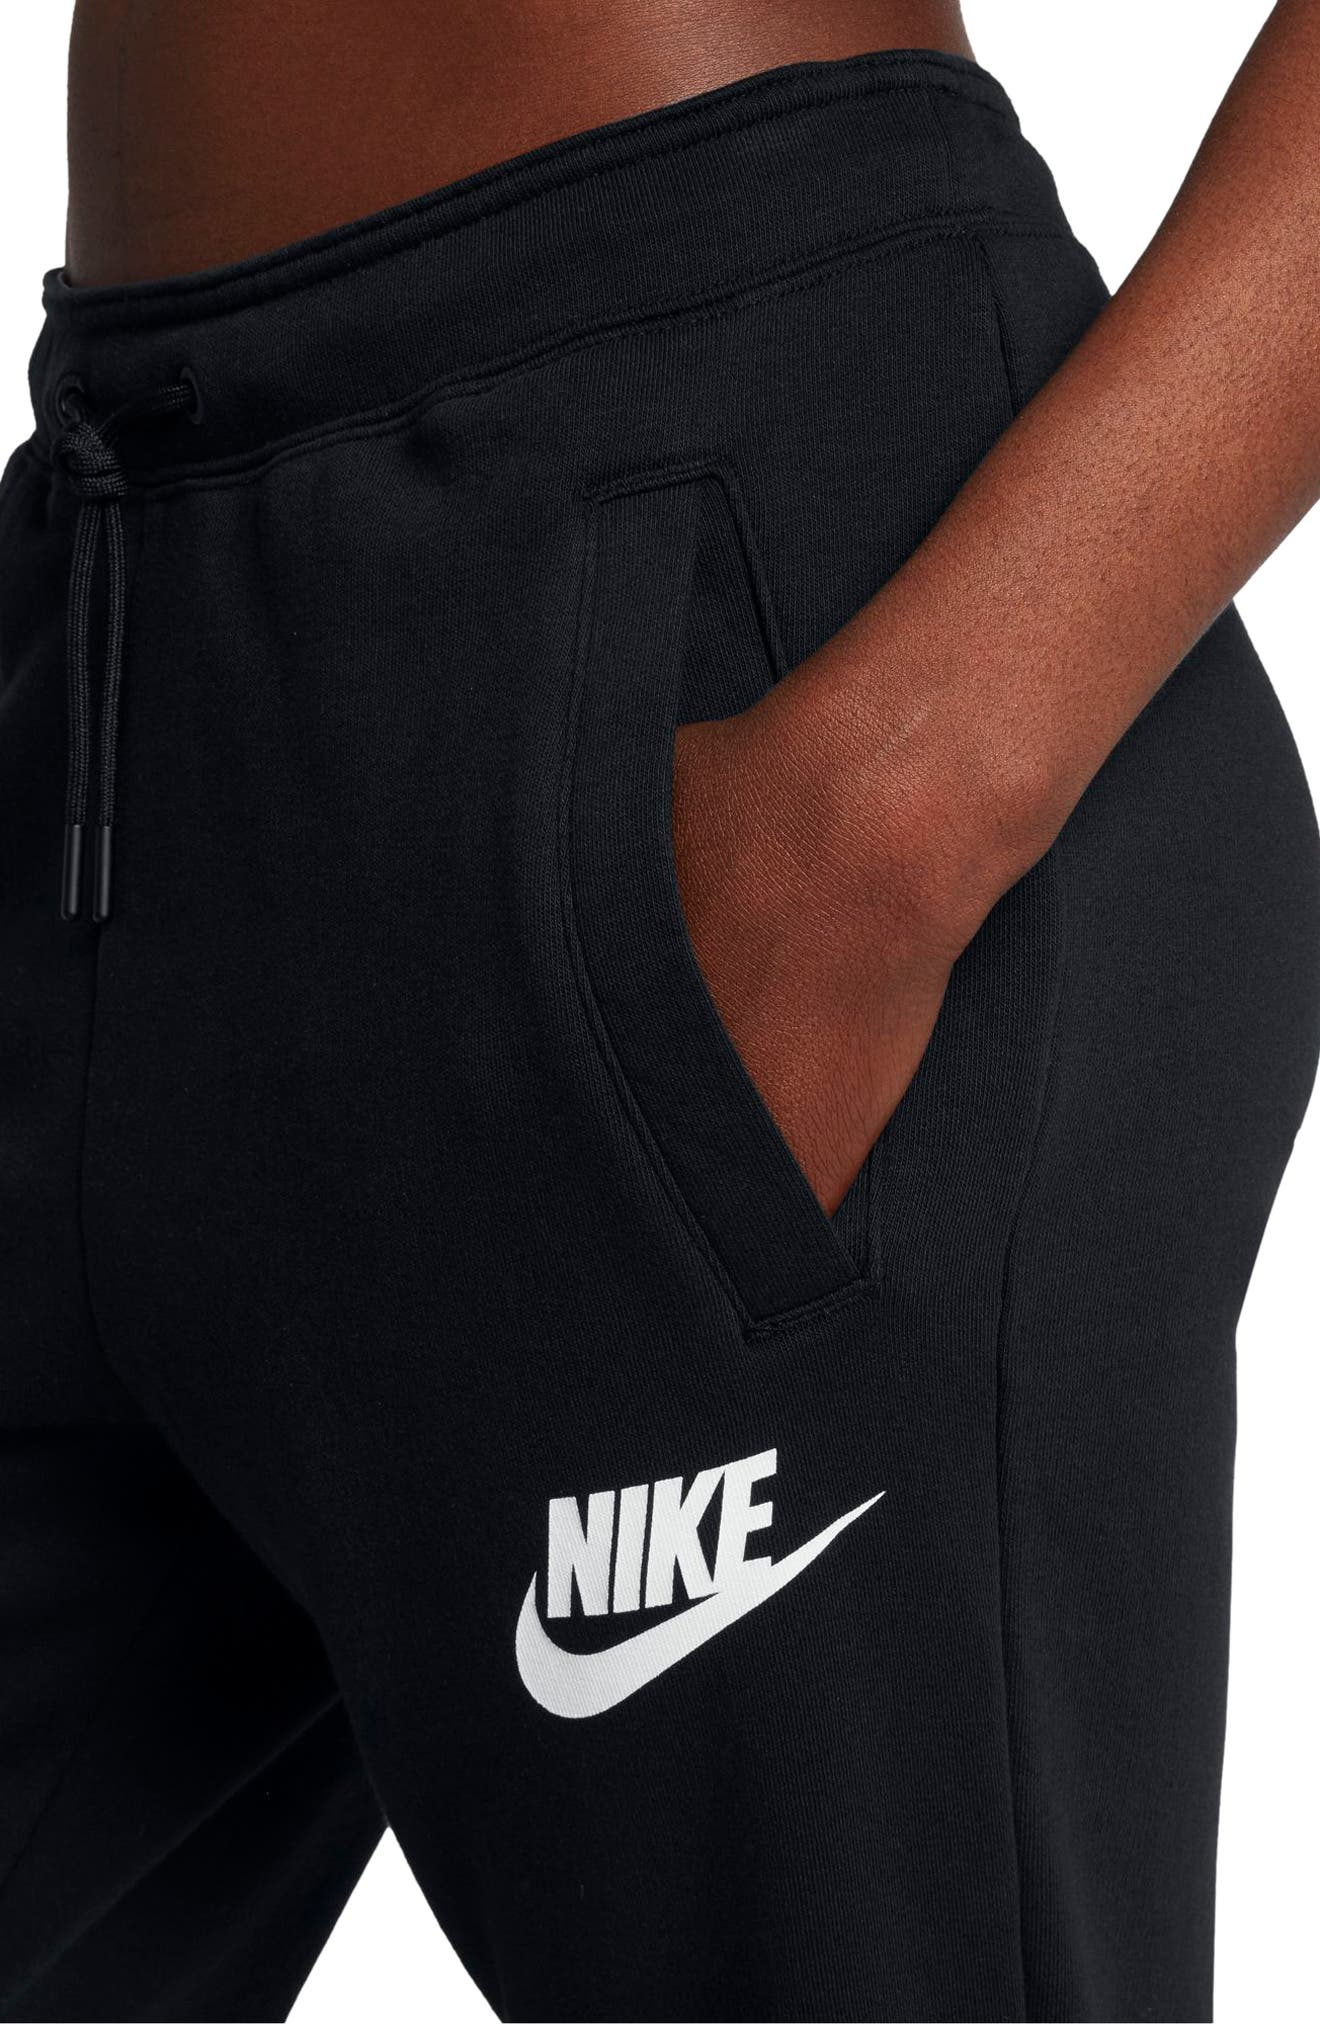 Sportswear Rally Fleece Pants,                             Alternate thumbnail 4, color,                             Black/ Black/ White